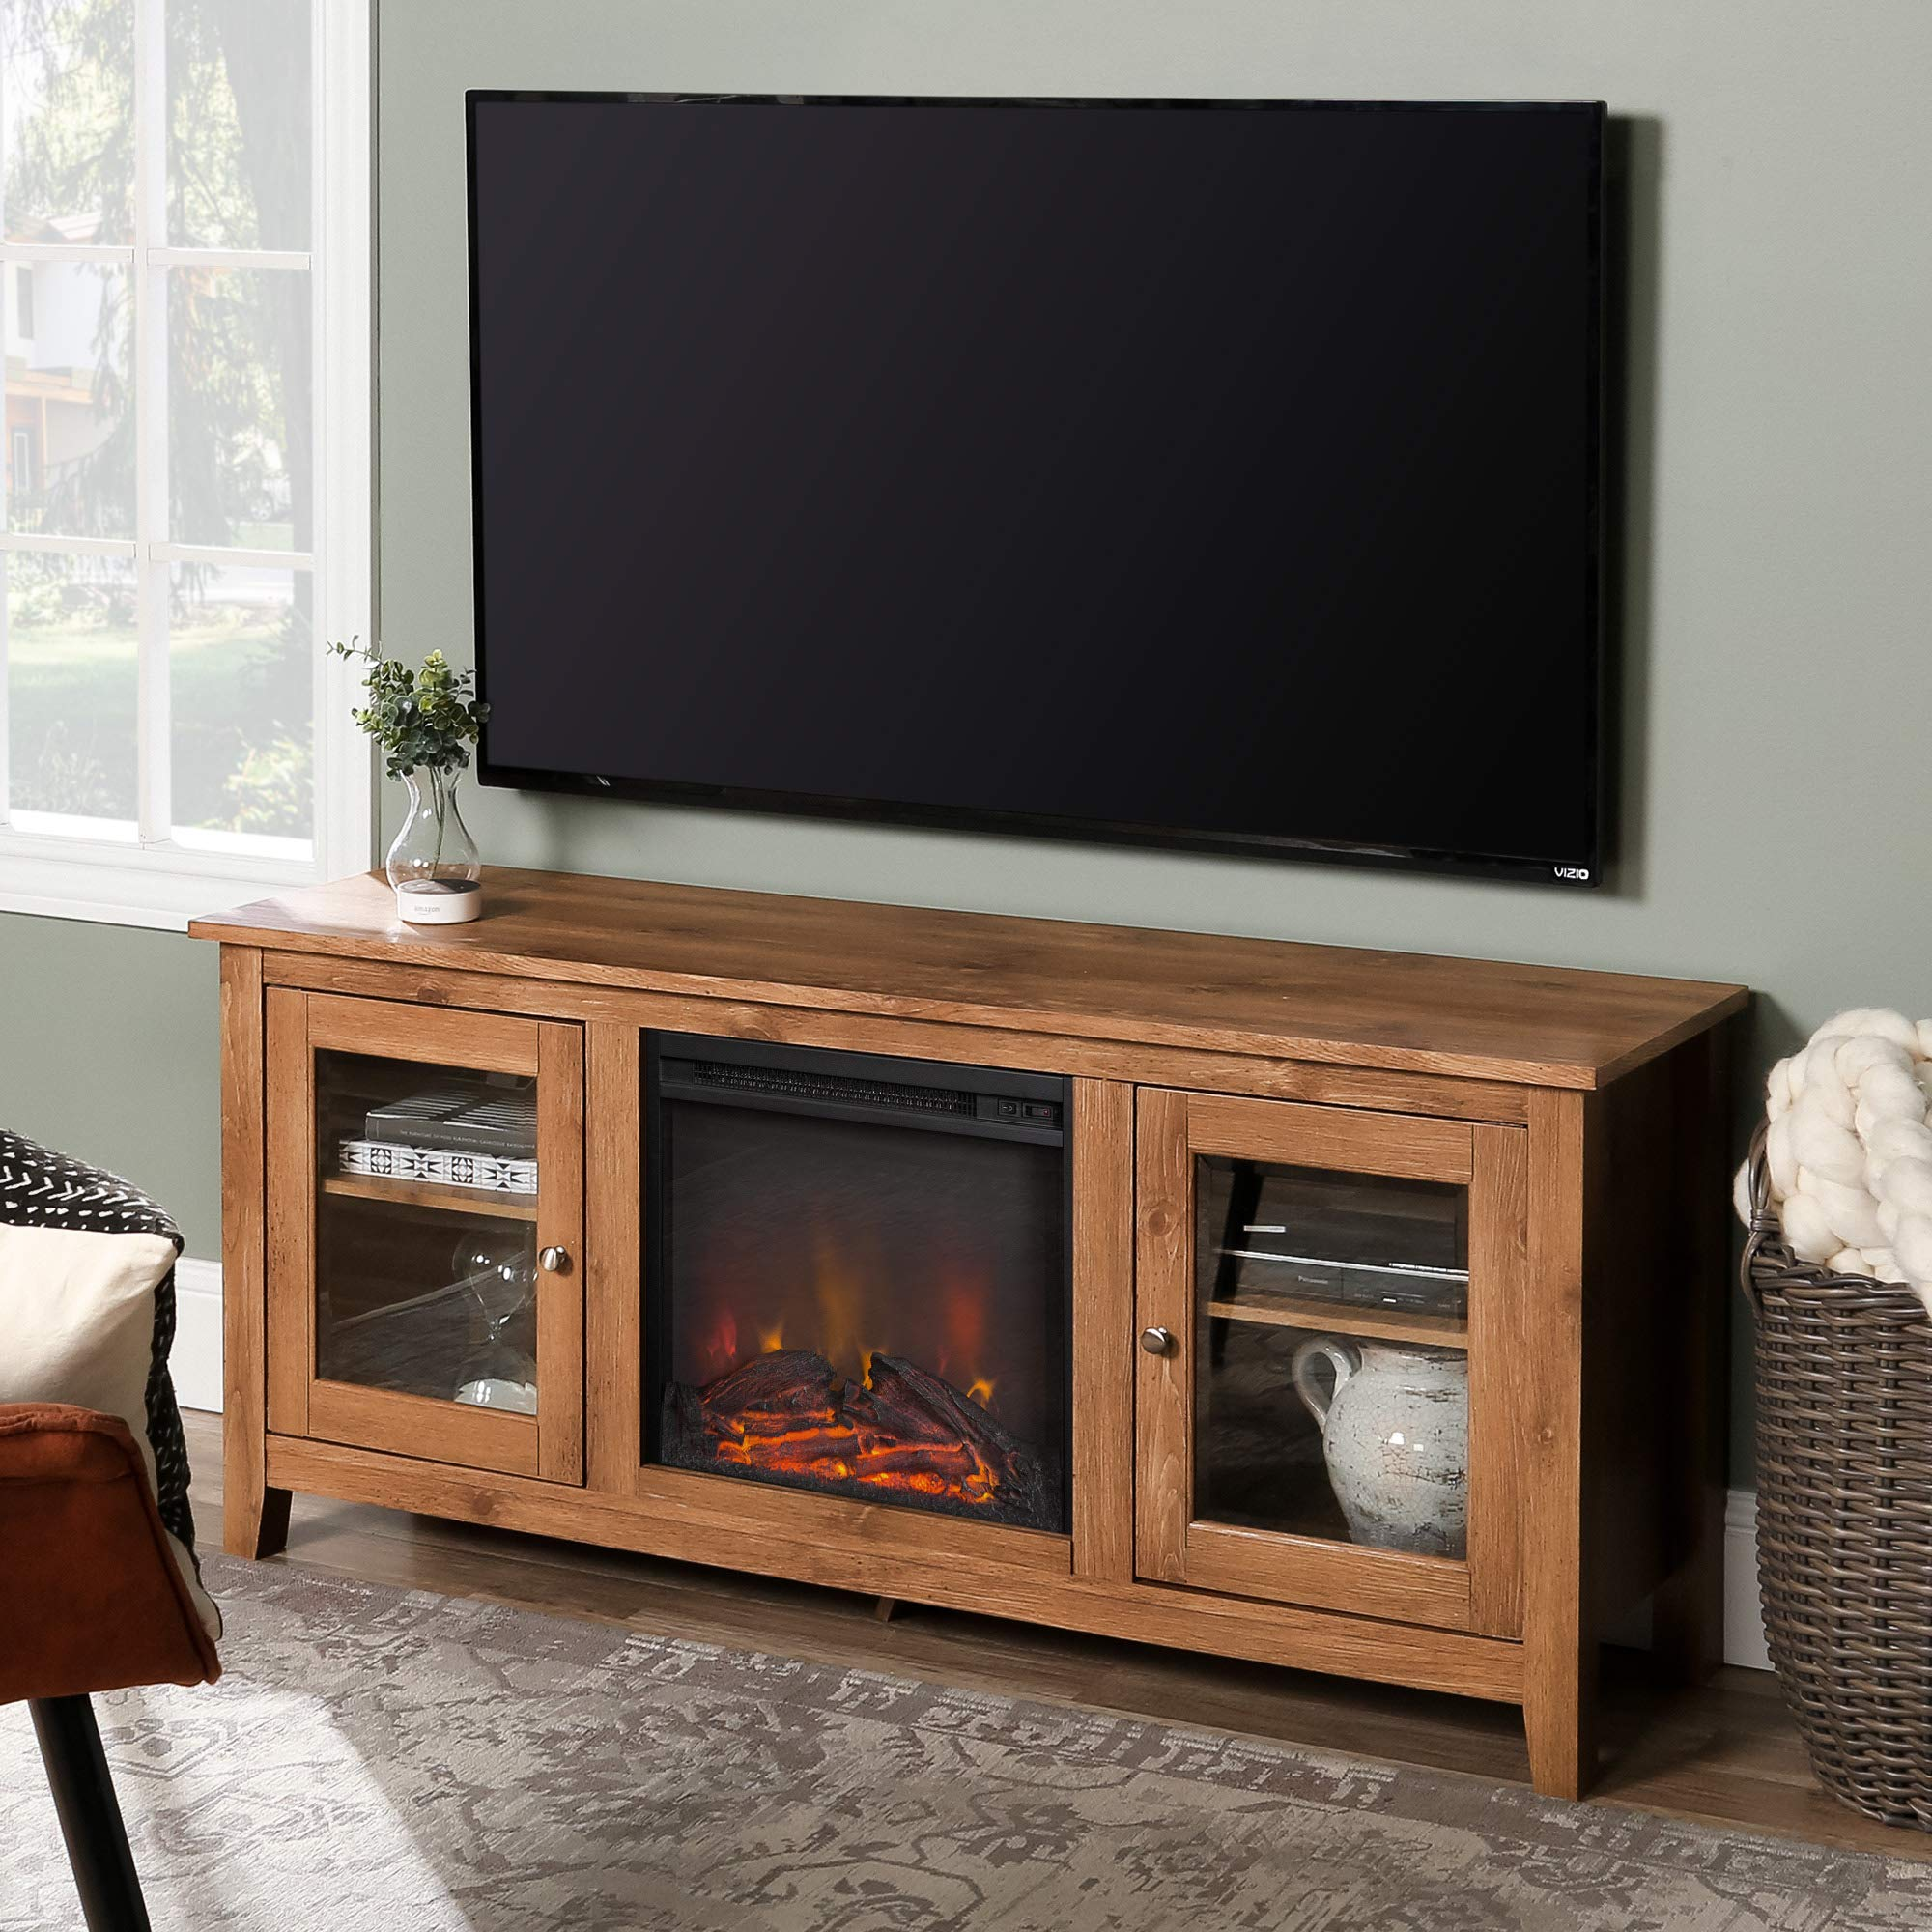 WE Furniture Traditional Wood Fireplace Stand for TV's up to 64'' Living Room Storage, Barnwood Brown by WE Furniture